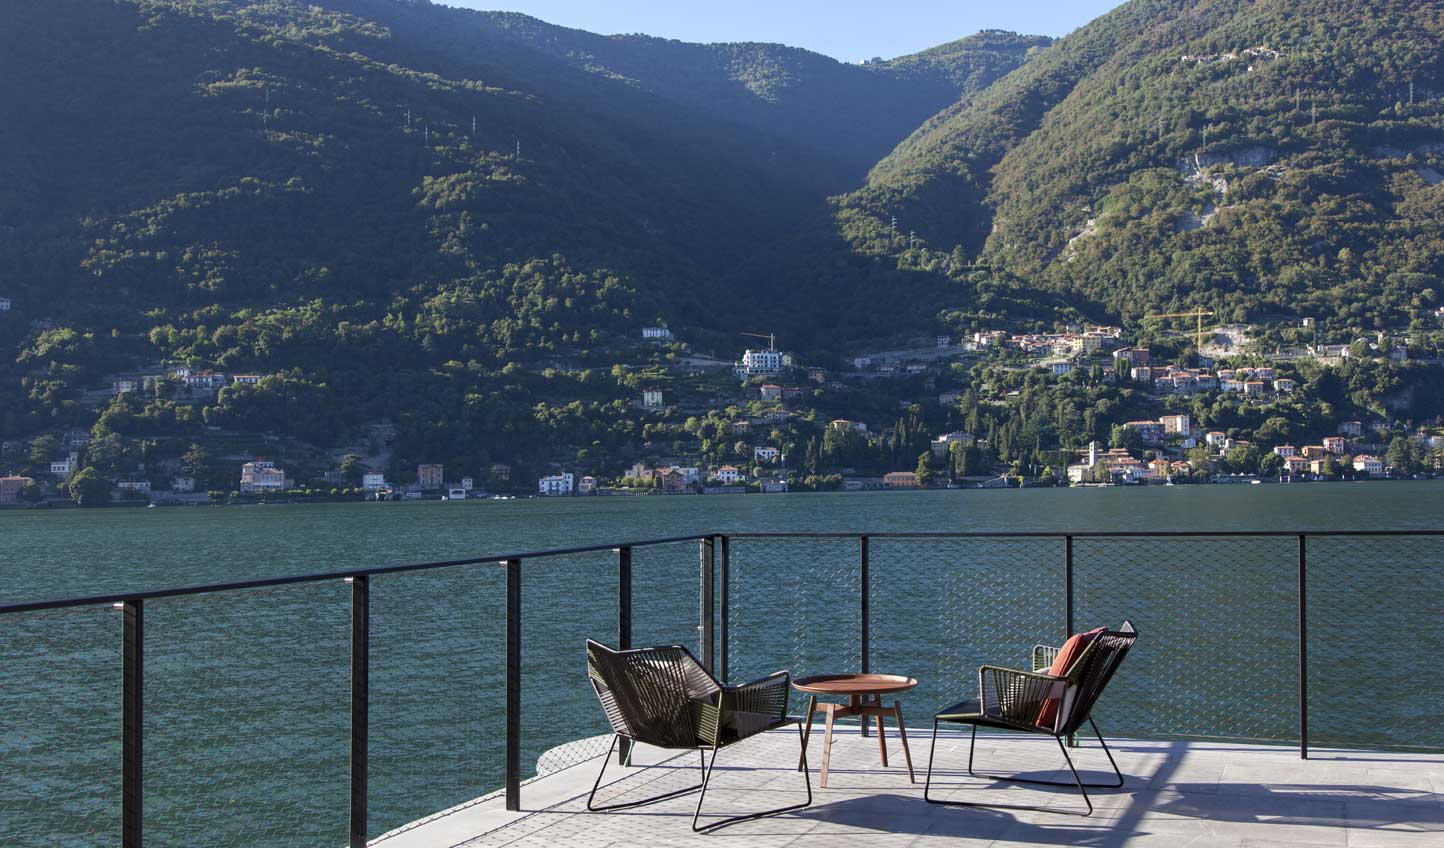 Soak up the beauty of Lake Como from the terrace